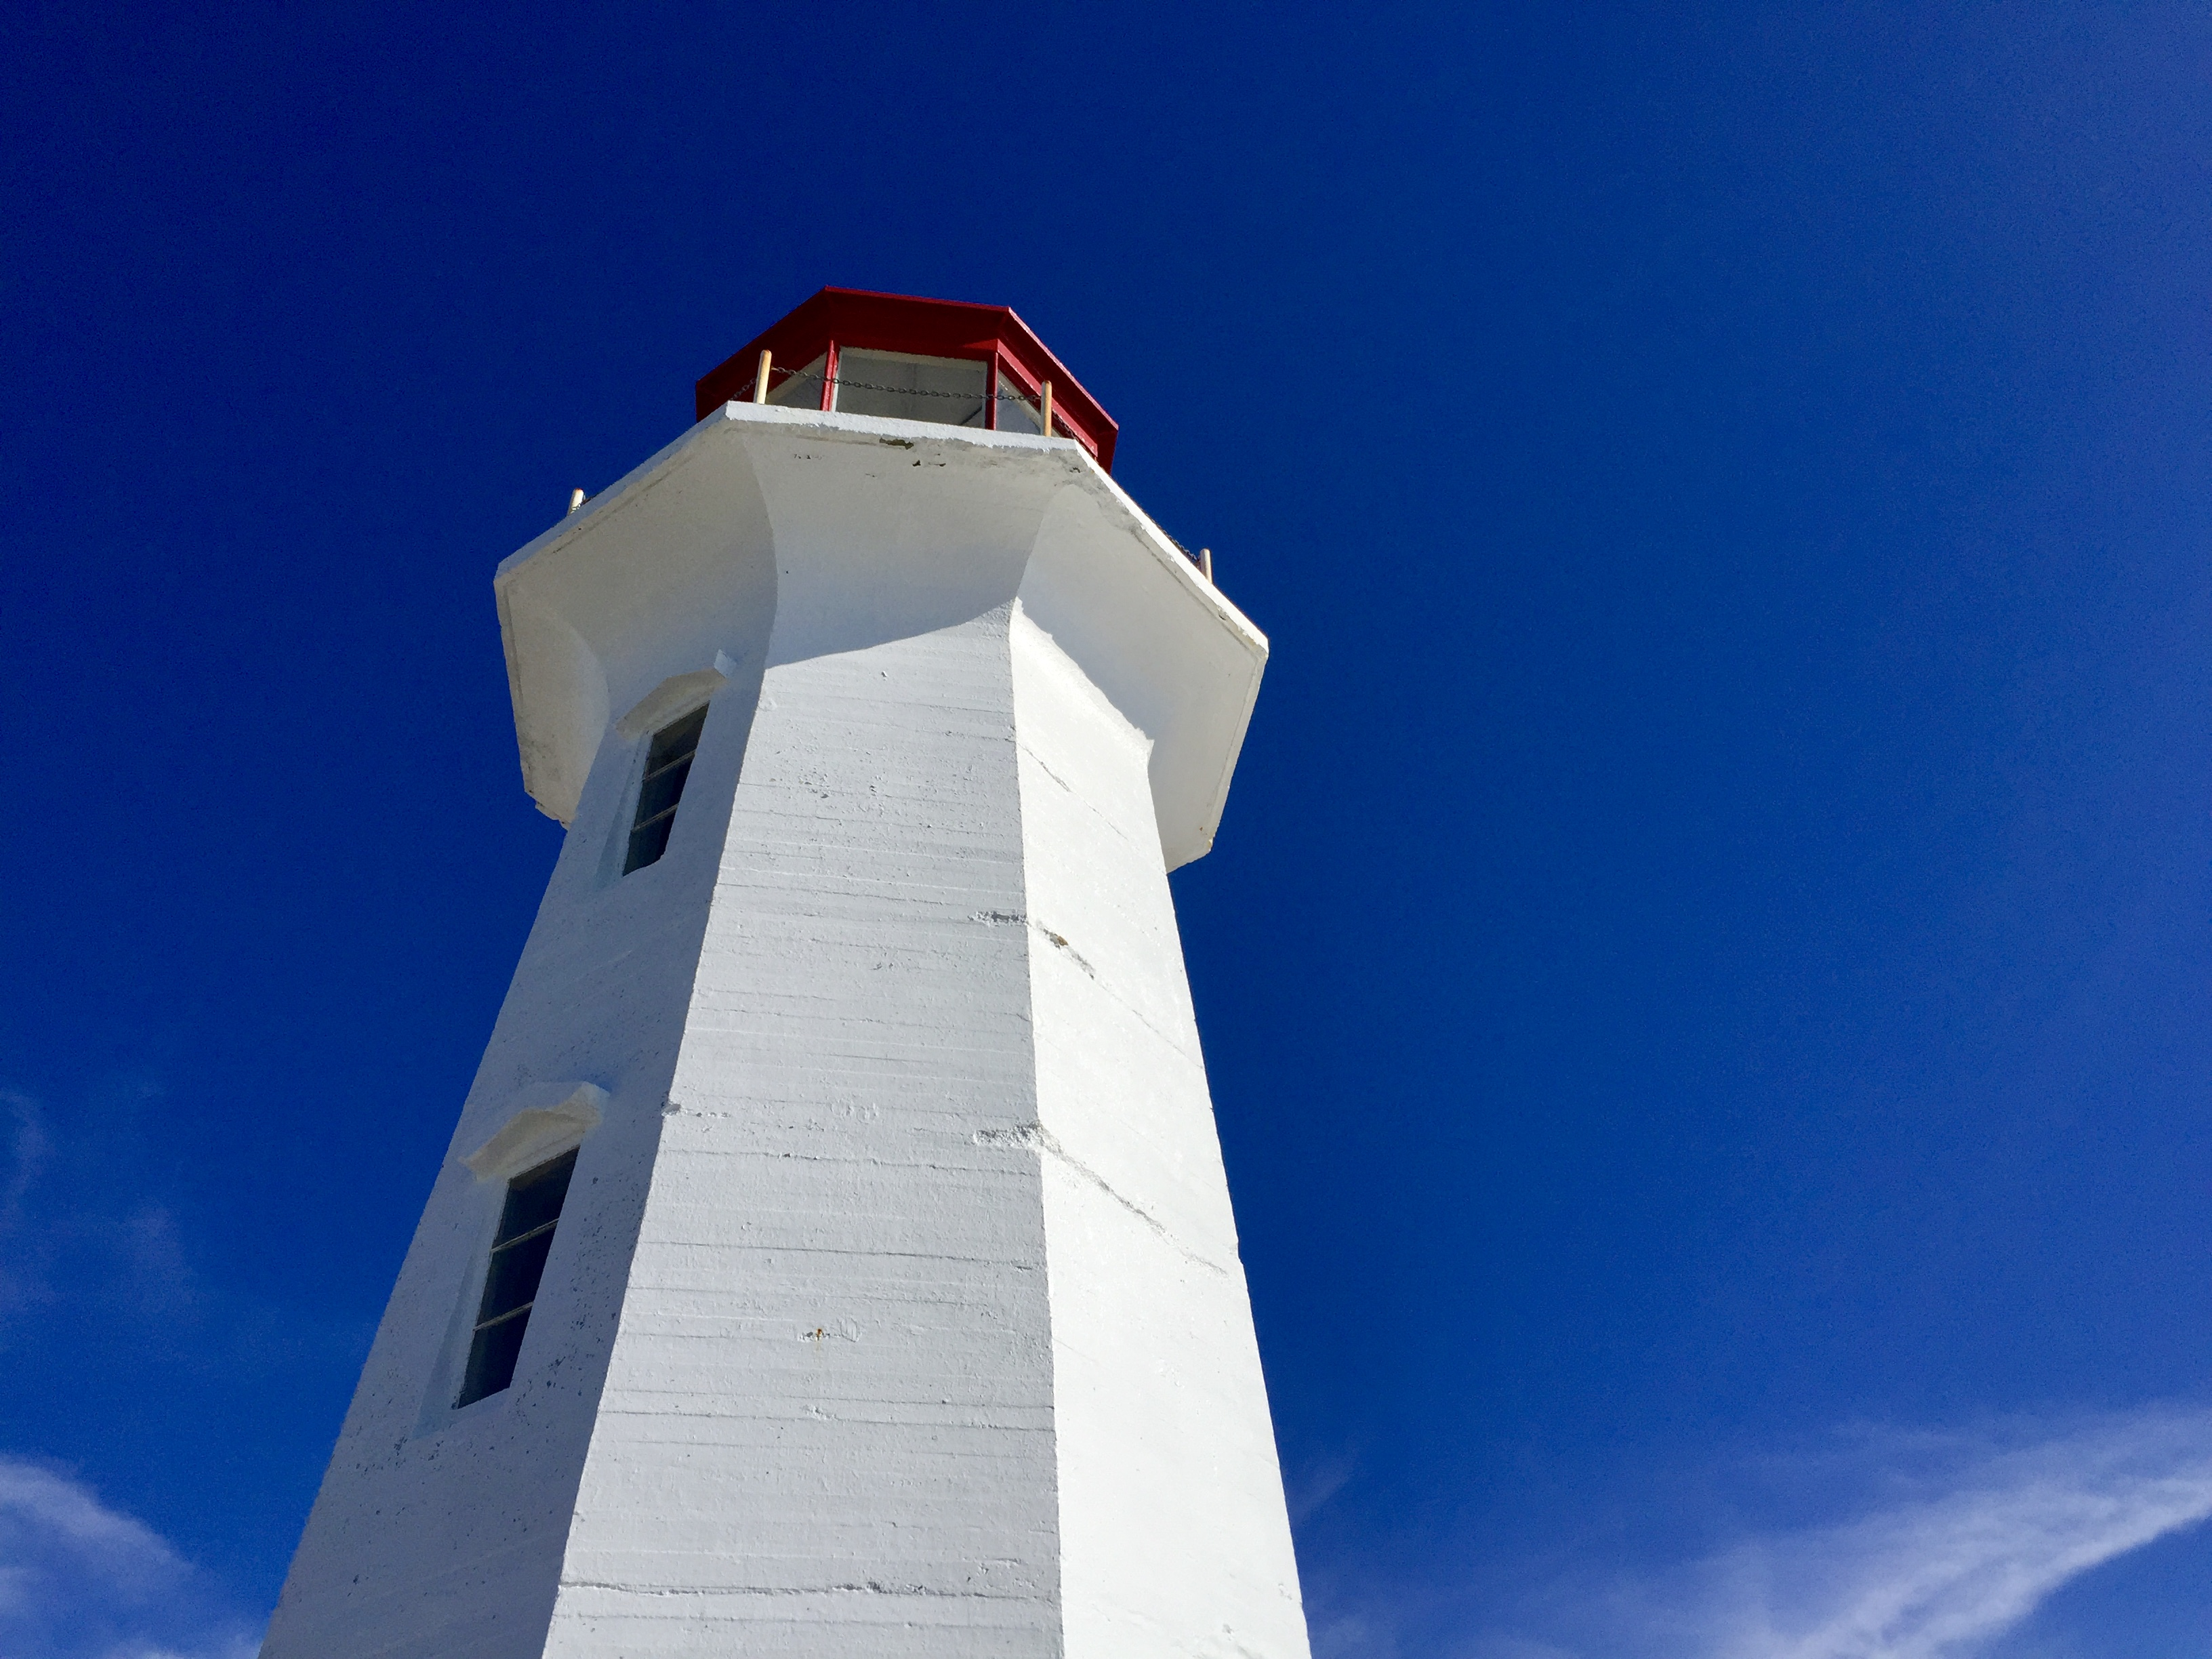 Peggy's Point Lighthouse in Nova Scotia